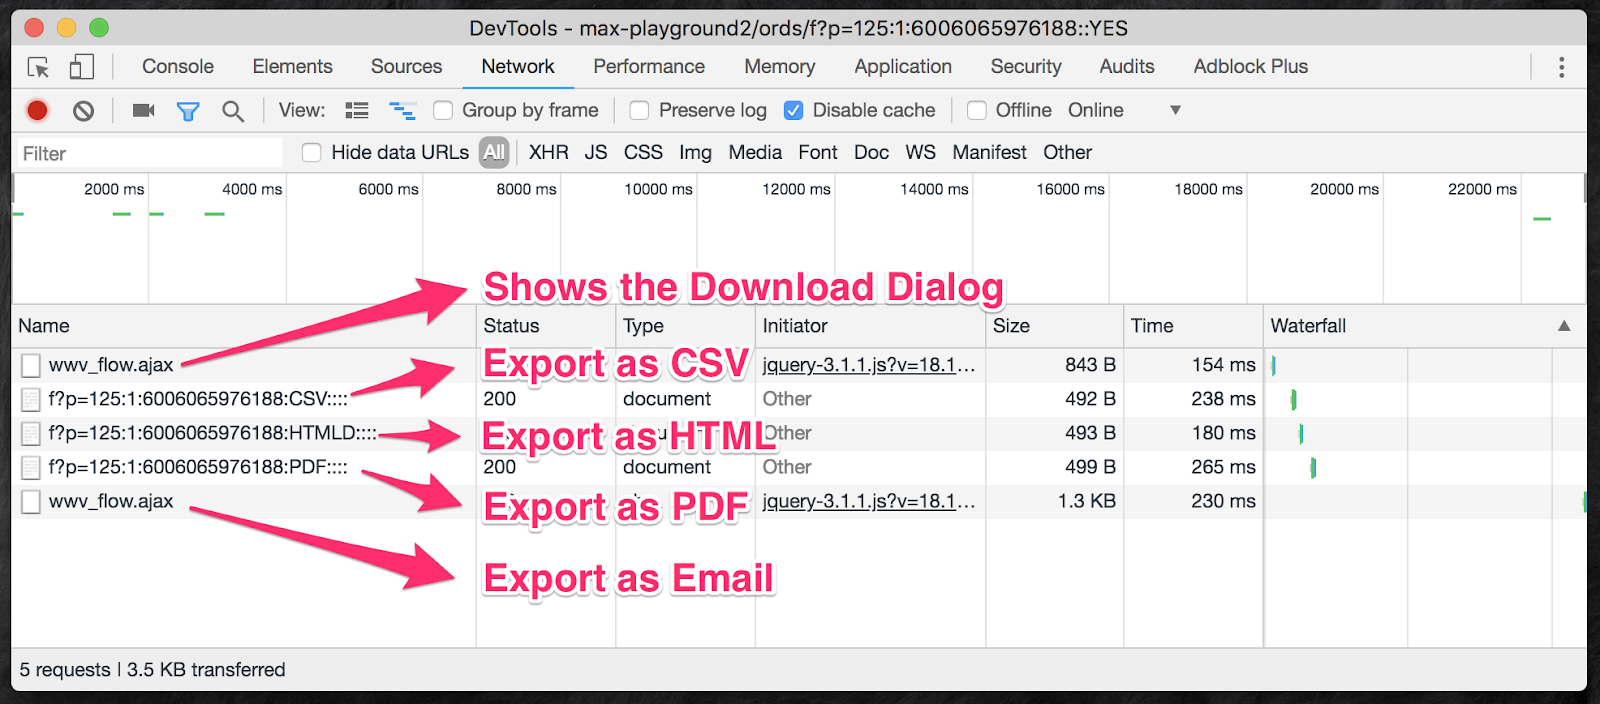 DevTools Requests